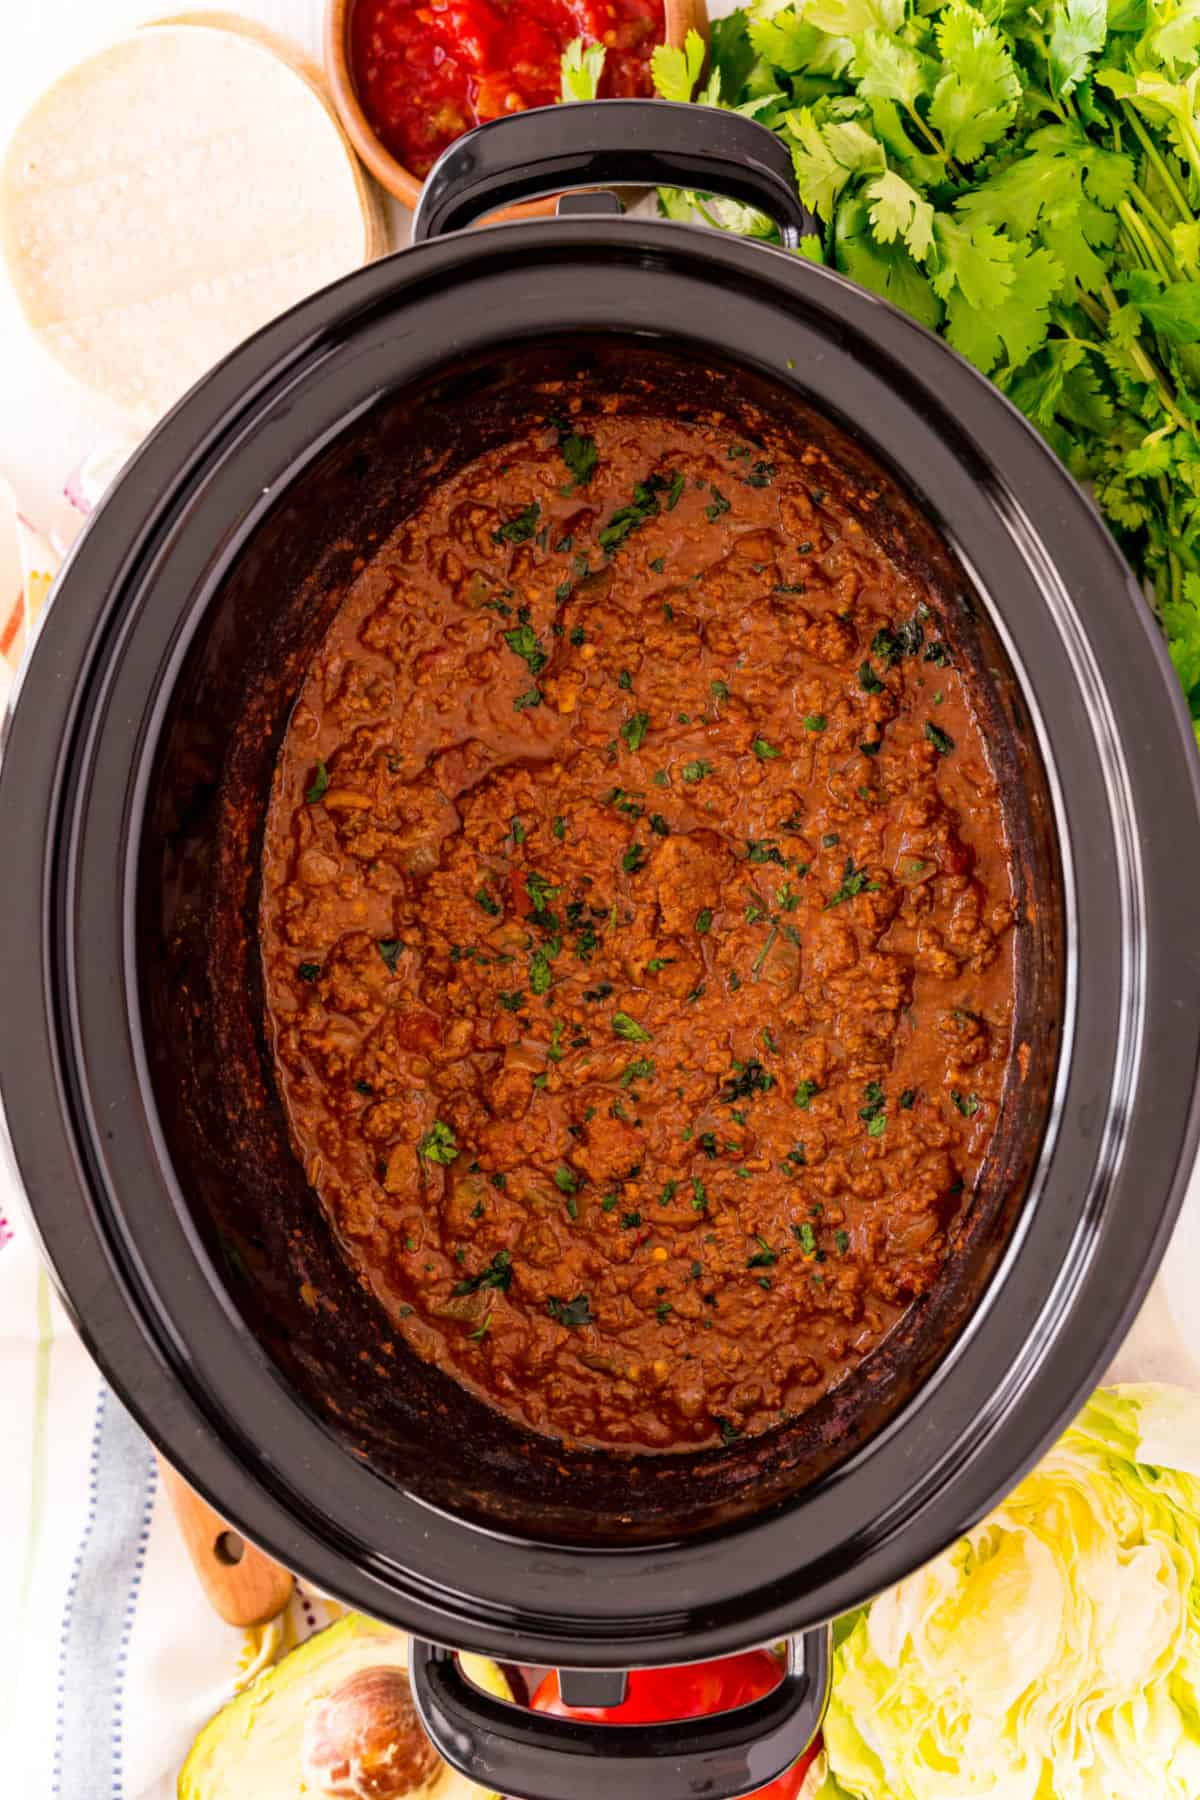 Cooked taco meat in slow cooker.